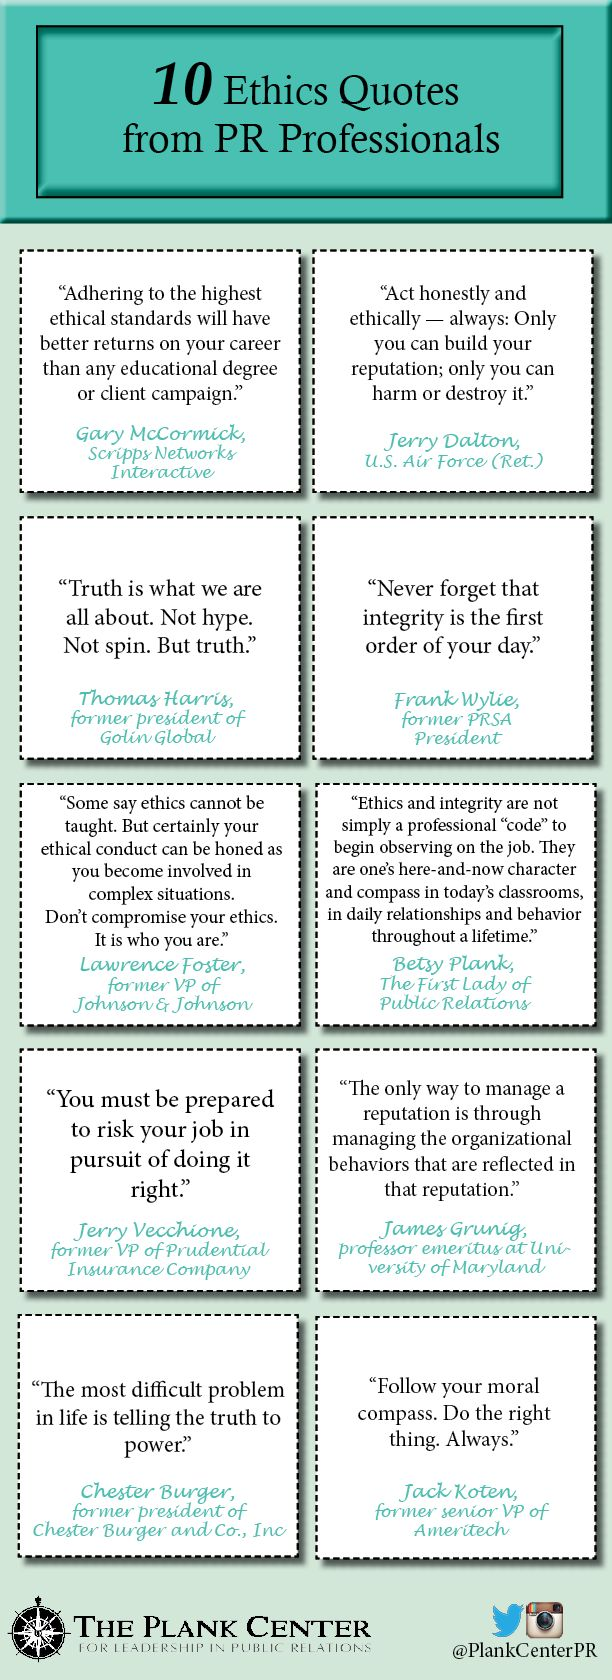 22 best ethical problems in business images on pinterest business 10 ethics quotes from pr pros fandeluxe Image collections